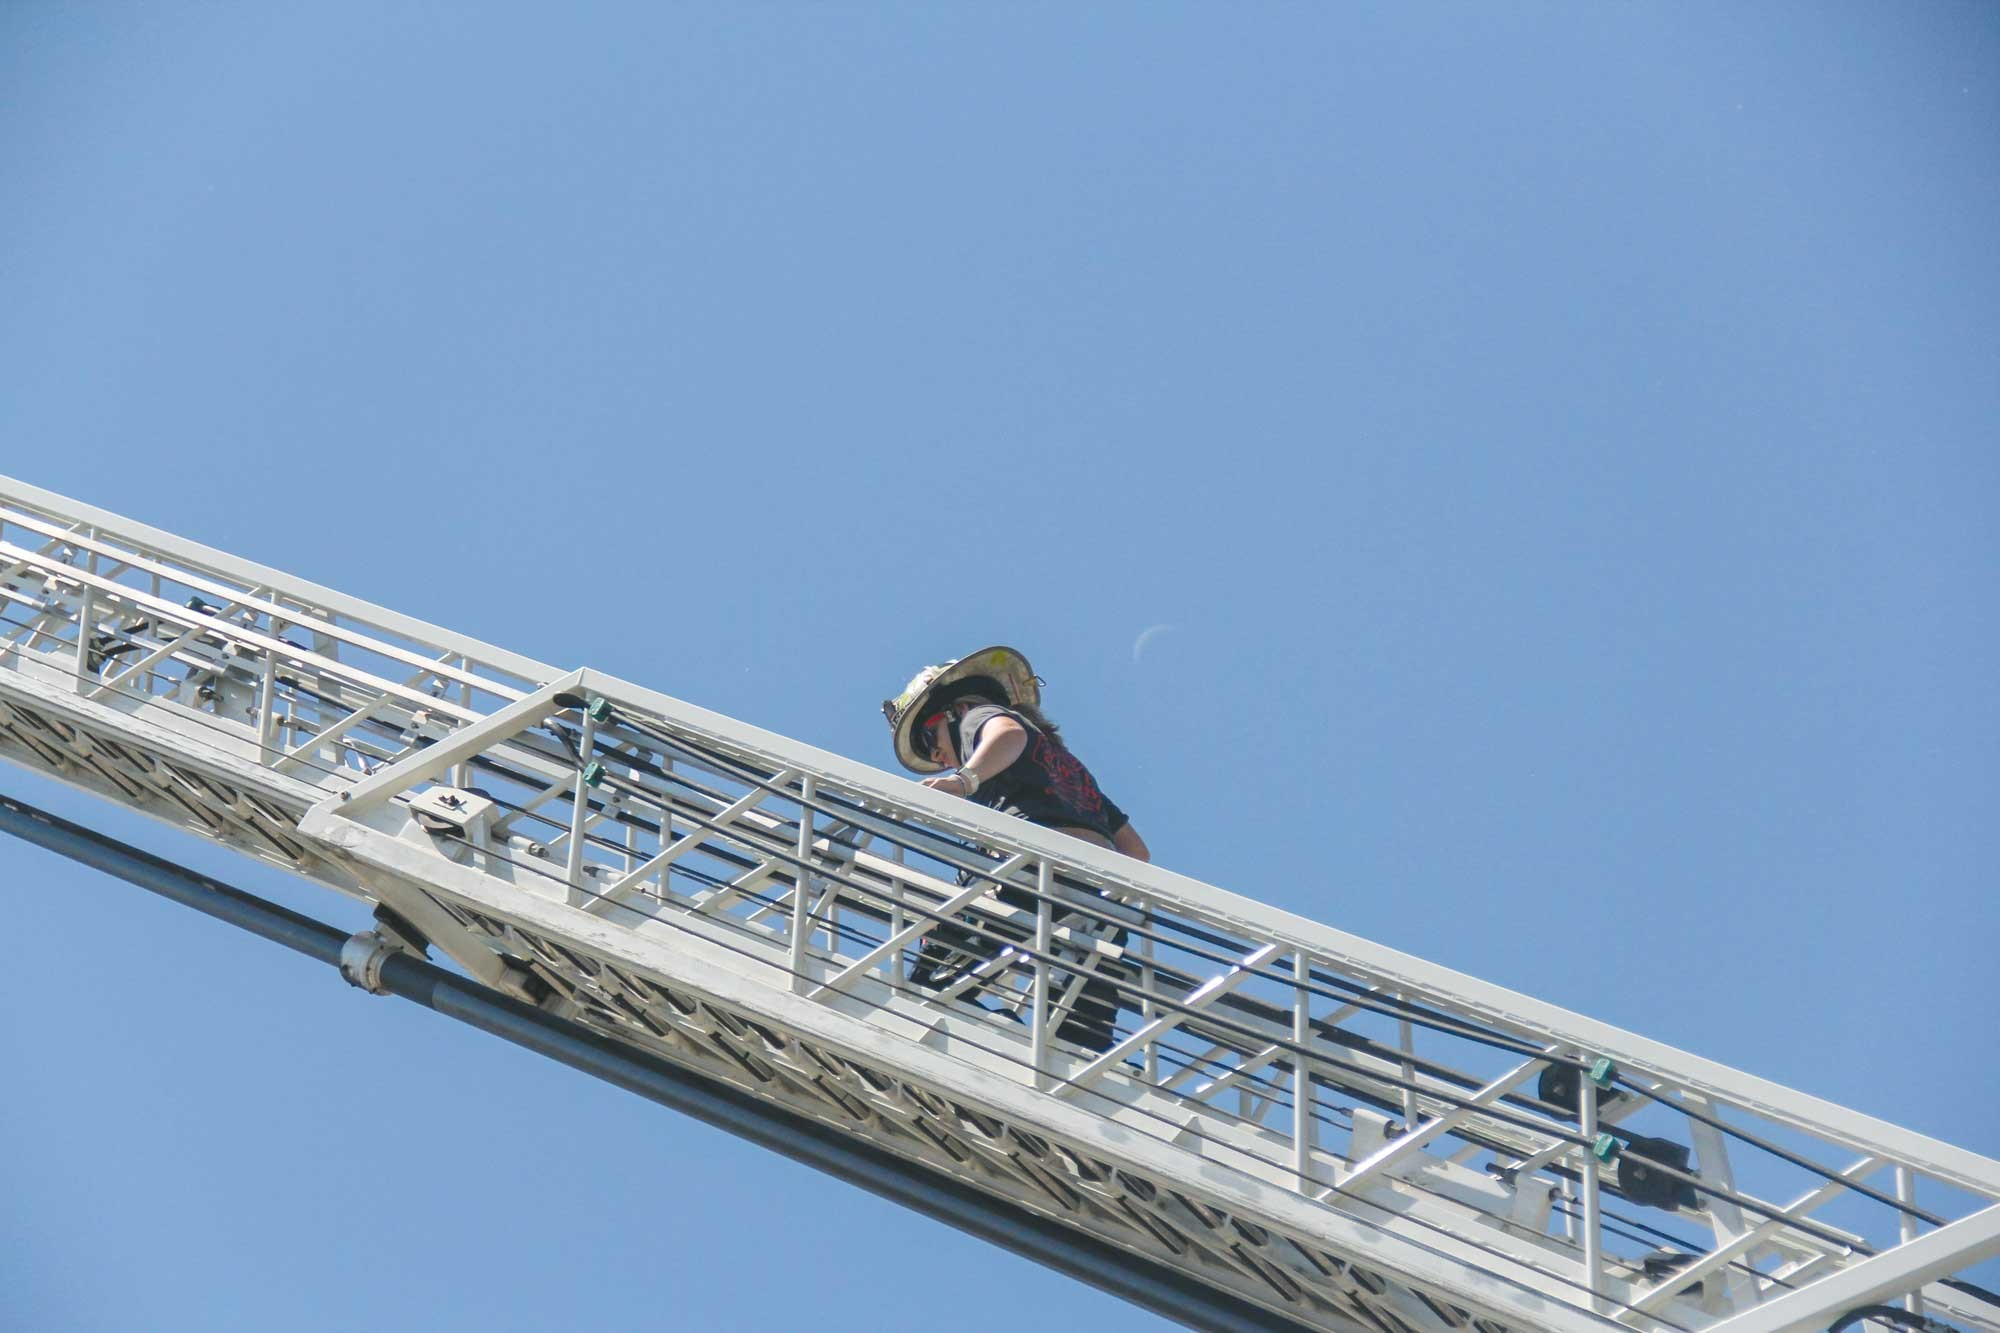 A Laurel firefighter climbs a fire truck ladder during Fire Safety Day on Saturday as the waning crescent moon is seen in the background.